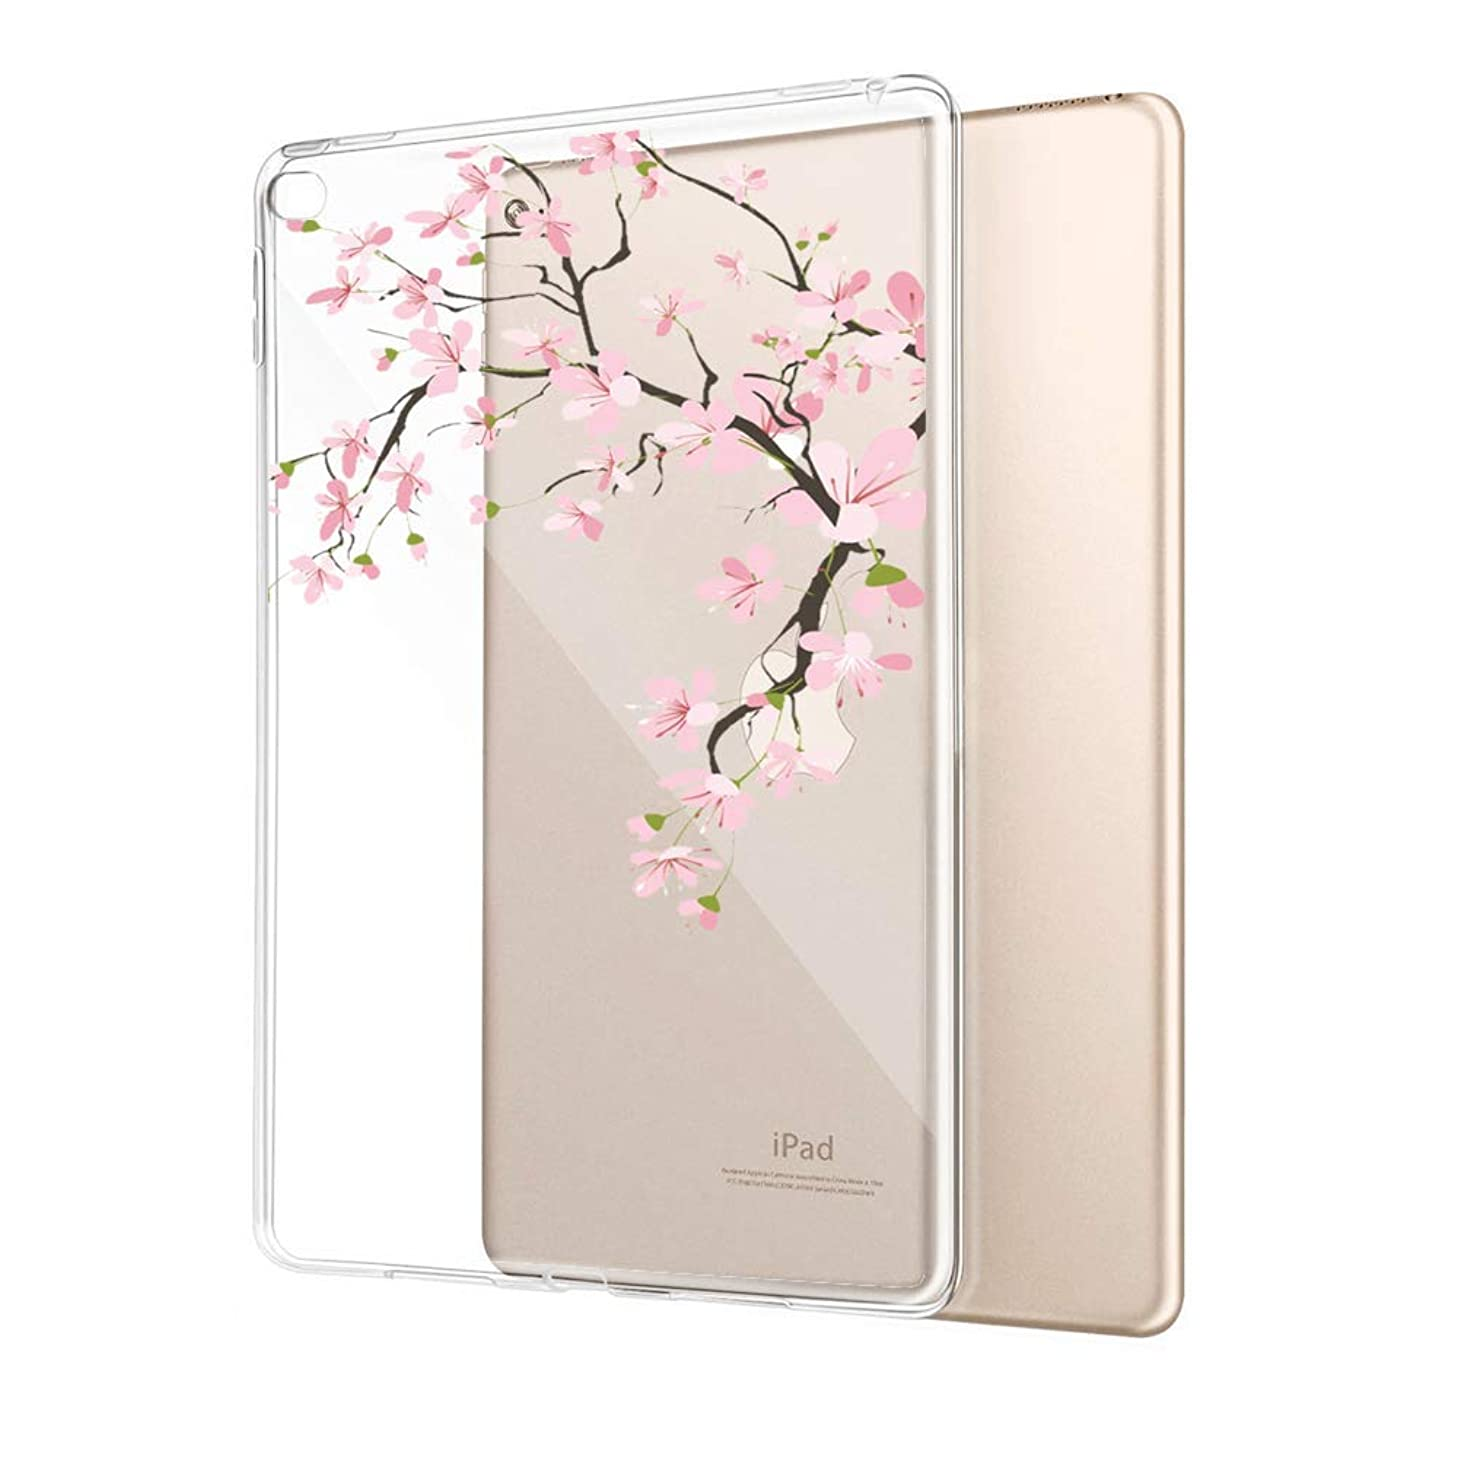 Case for iPad Air 2 Cherry Blossom Clear Case Shockproof Flexible Slim Soft Durable Rubber TPU Ultra-Clear Silicone Protective Case for iPad Air 2